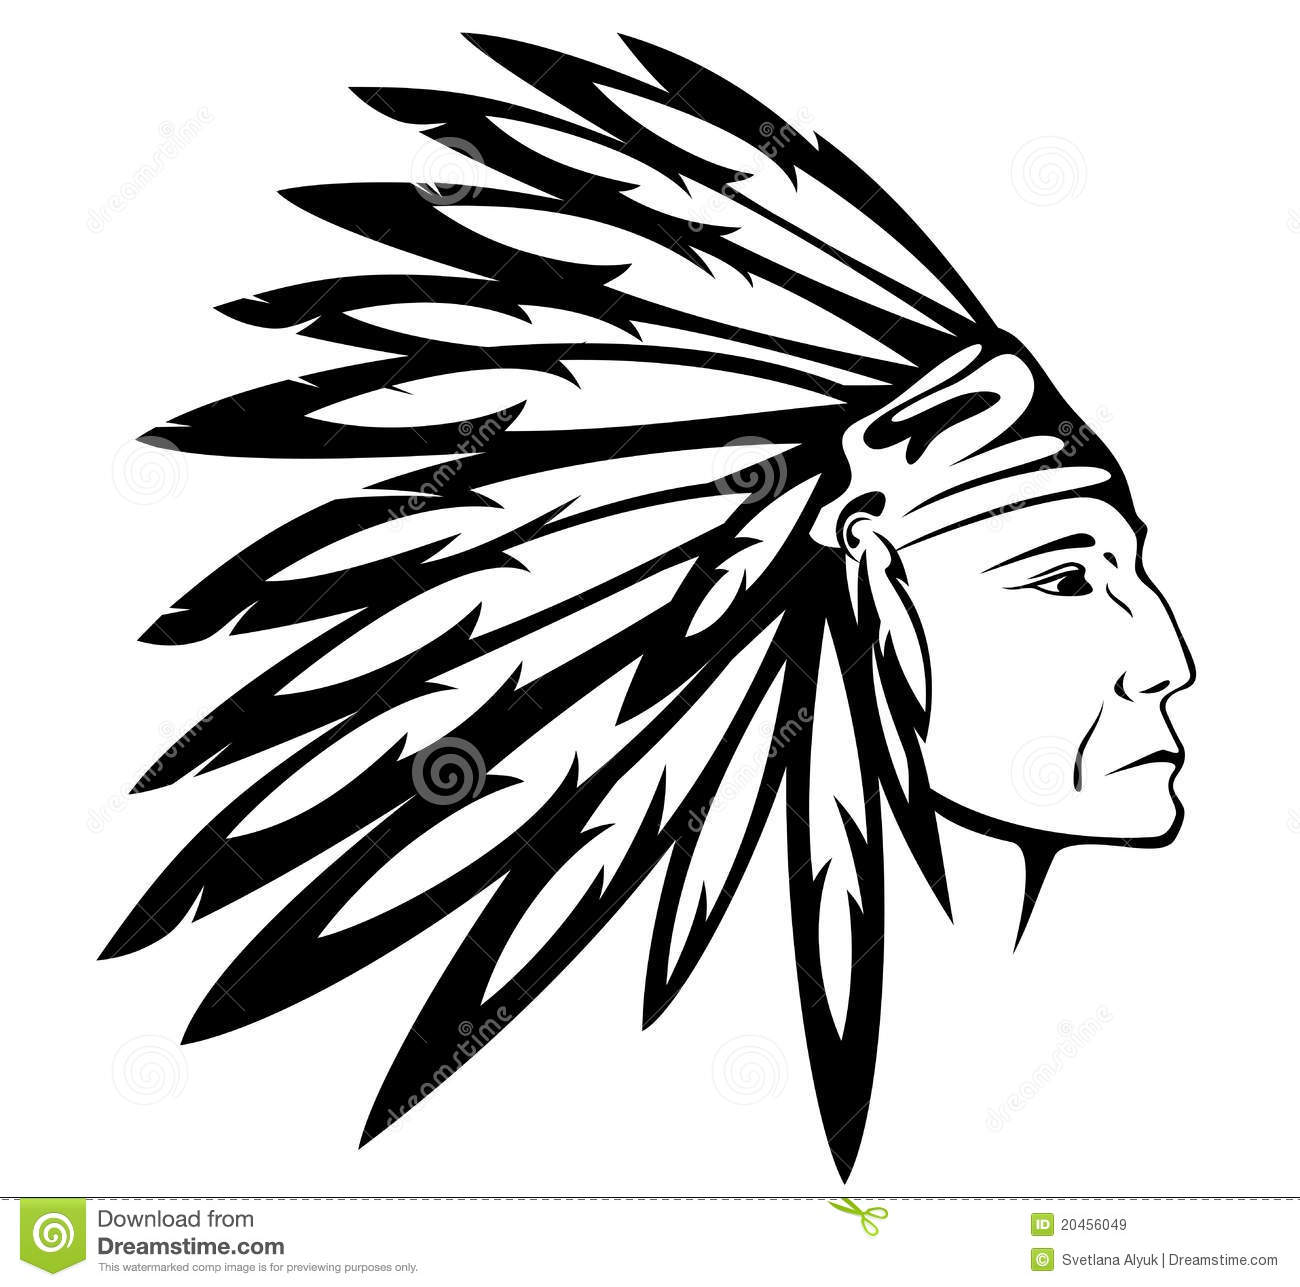 ... Indian Chief Vector Royalty Free Stock Images - Image: 20456049: www.dreamstime.com/royalty-free-stock-images-native-american-indian...